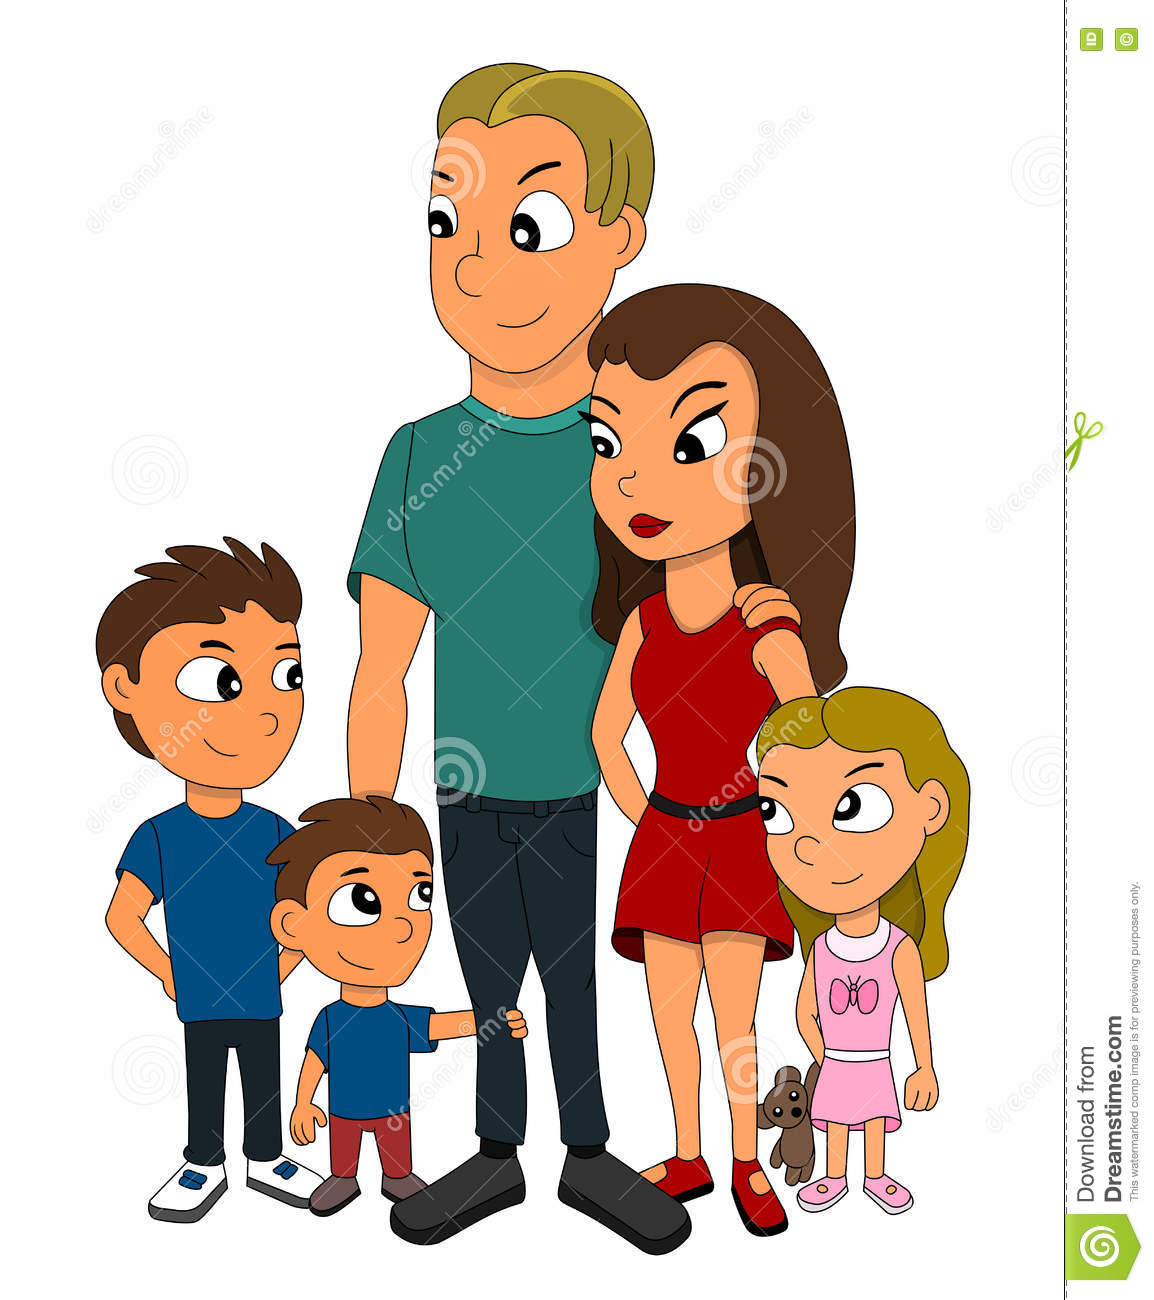 Cartoon Family Members Images